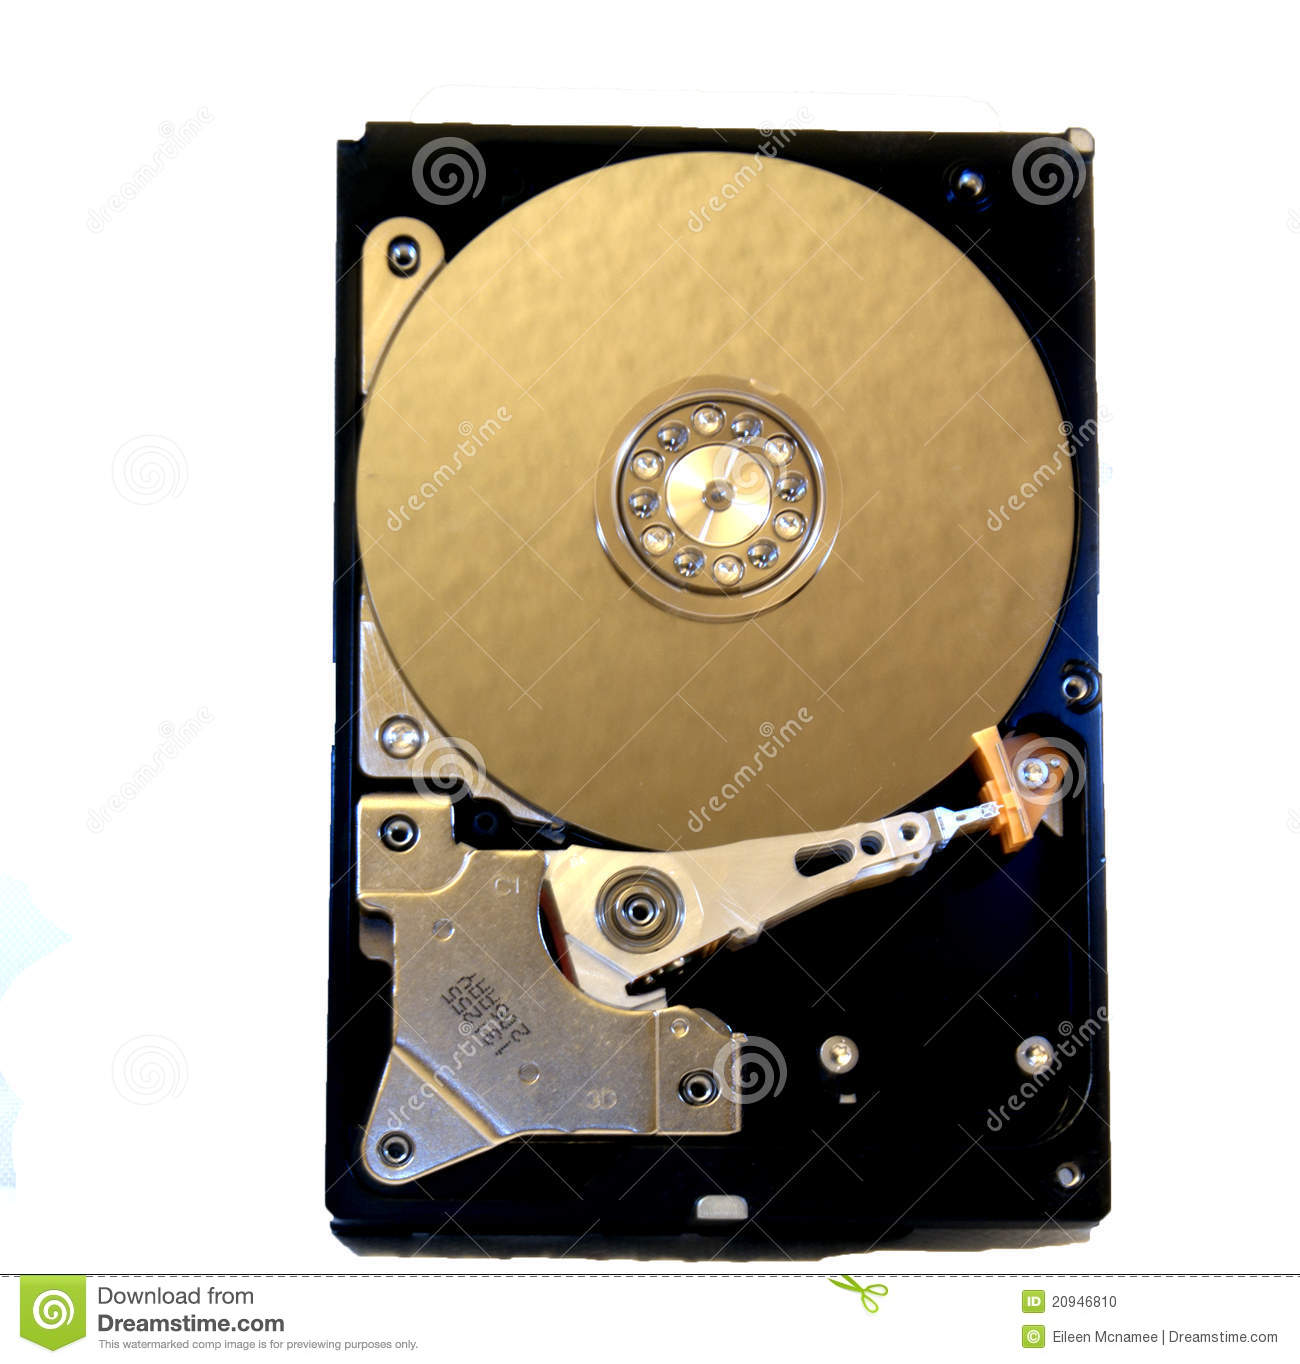 how to connect internal hard drive to computer